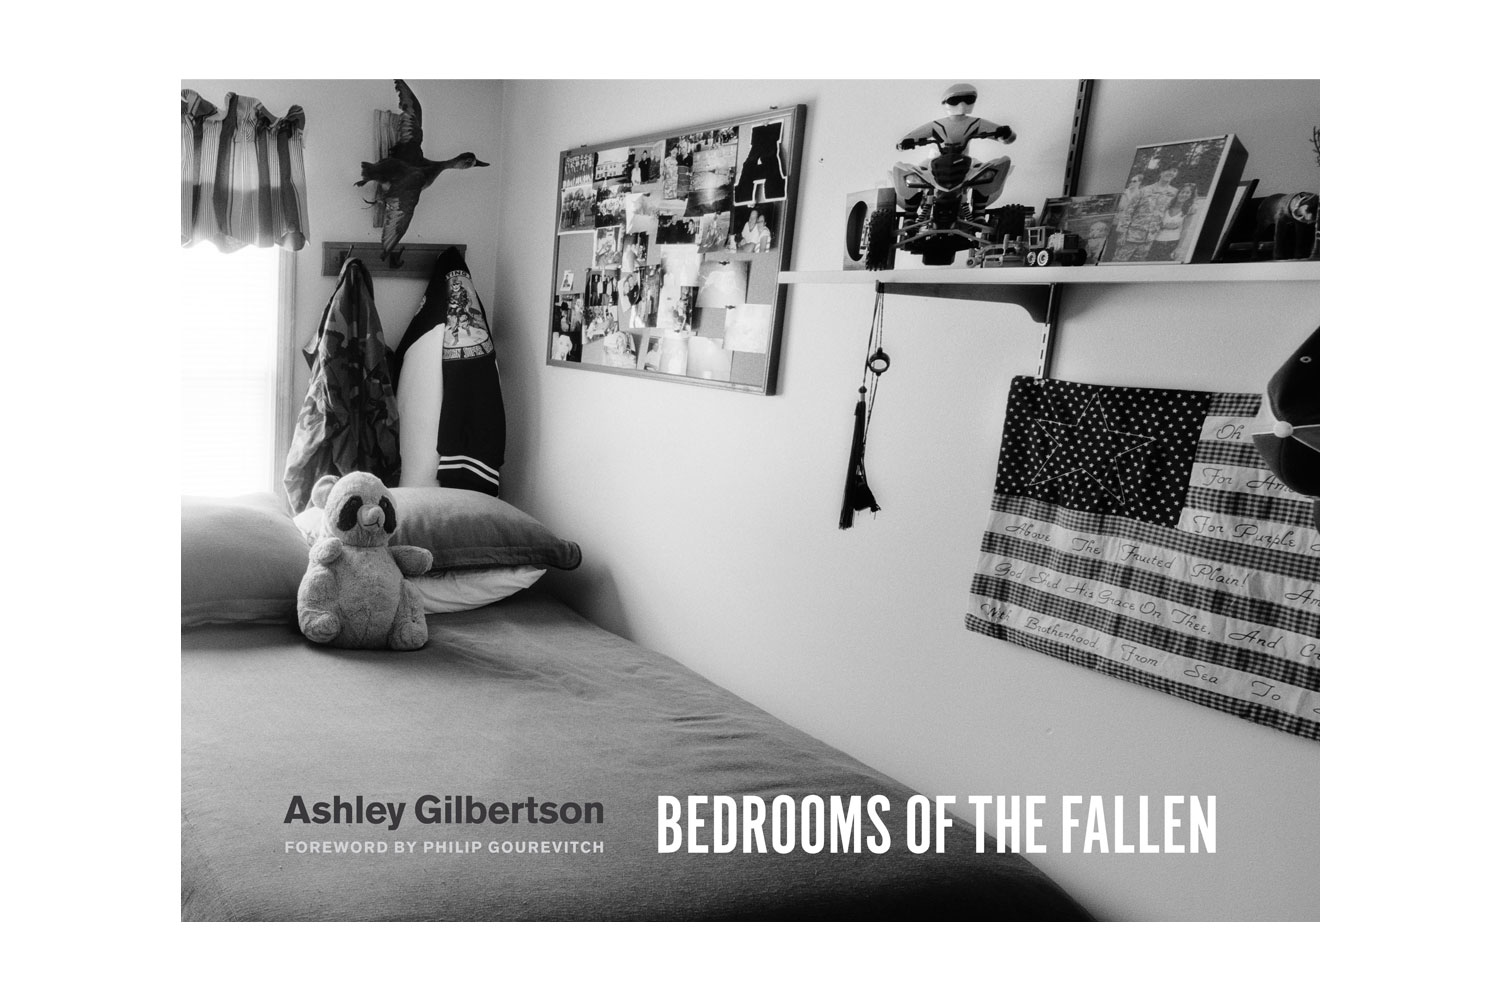 Ashely Gilbertson's Bedrooms of the Fallen, published by the University of Chicago Press Equal parts haunting and hopeful, Gilbertson peers into the sacred spaces of fallen US soldiers to reveal the things they left behind.